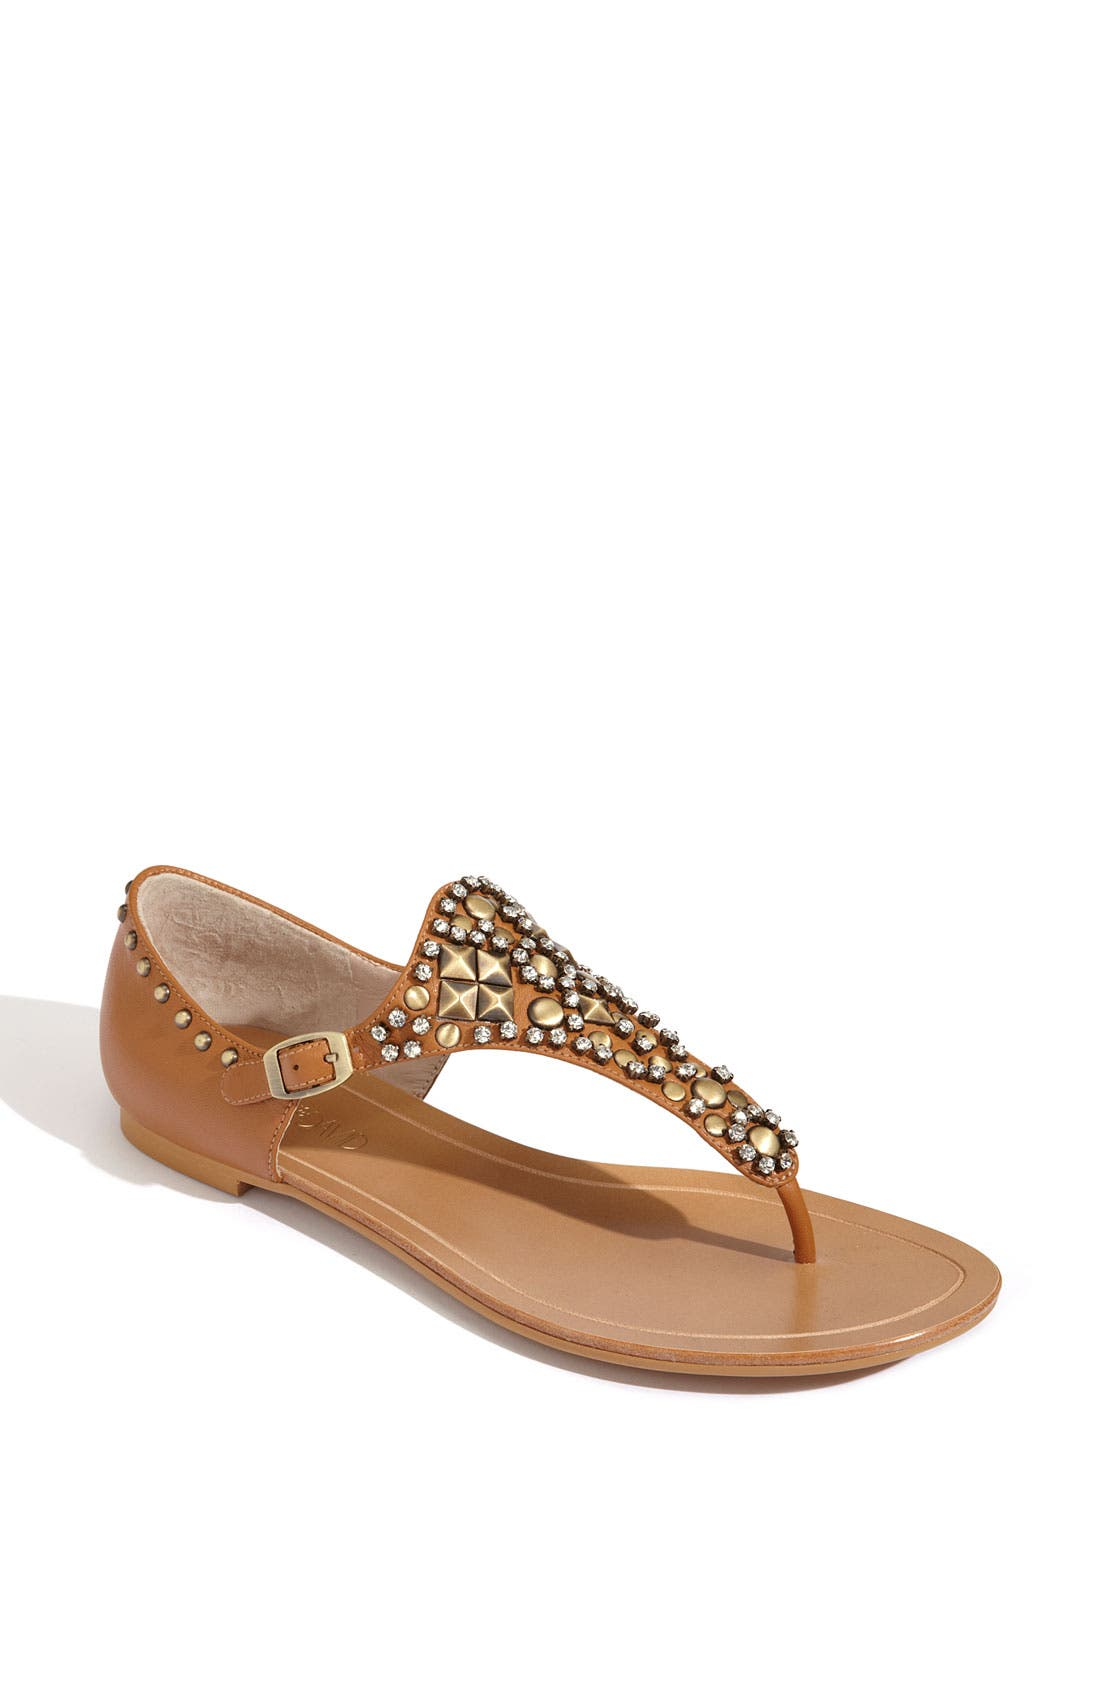 Main Image - Joan & David 'Kaycia' Sandal